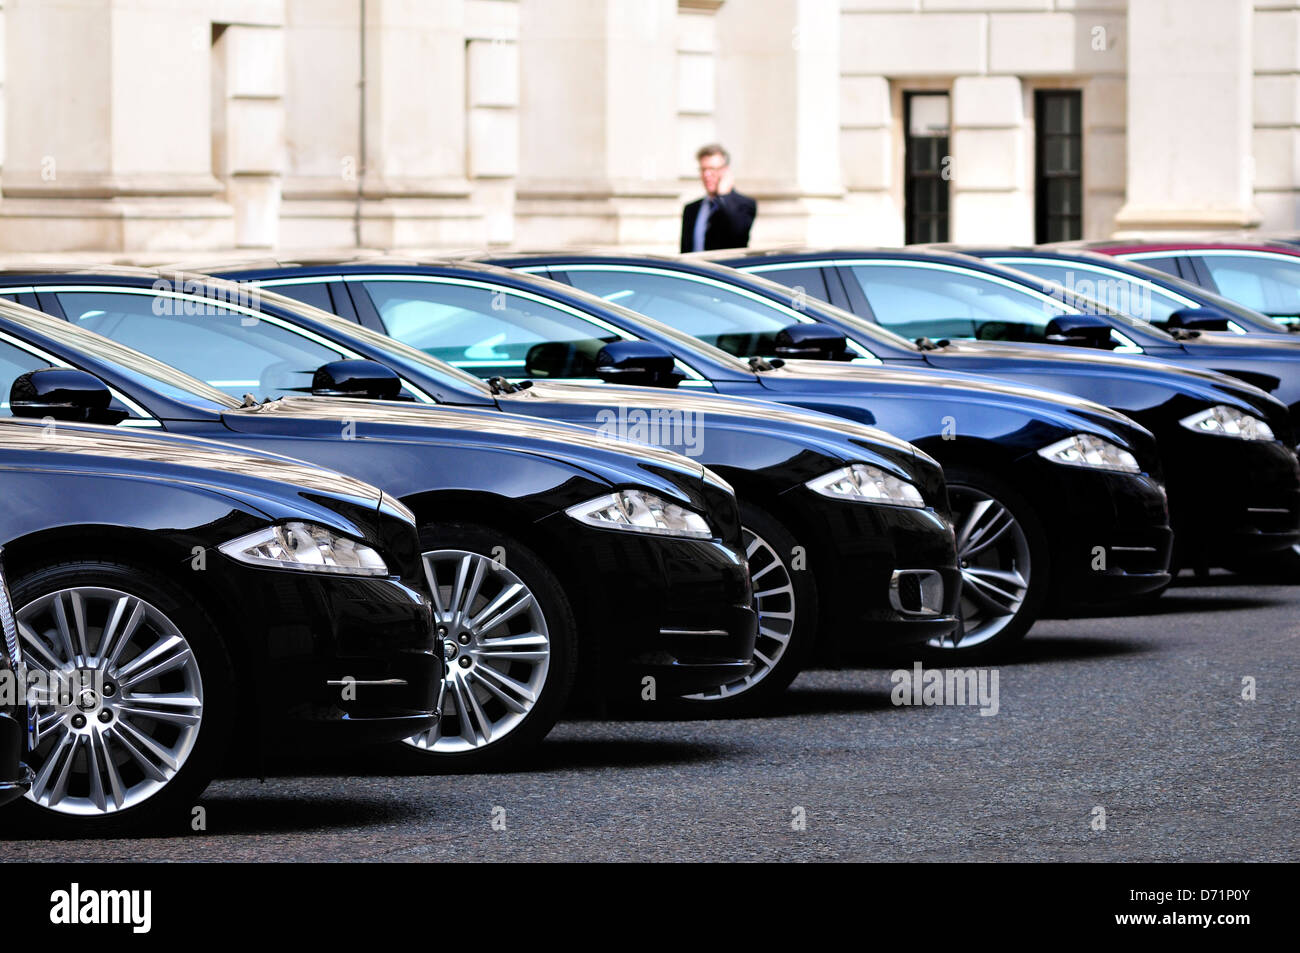 London, England, UK. King Charles Street. Official Government cars (Jaguar) parked by the Foreign Office - Stock Image